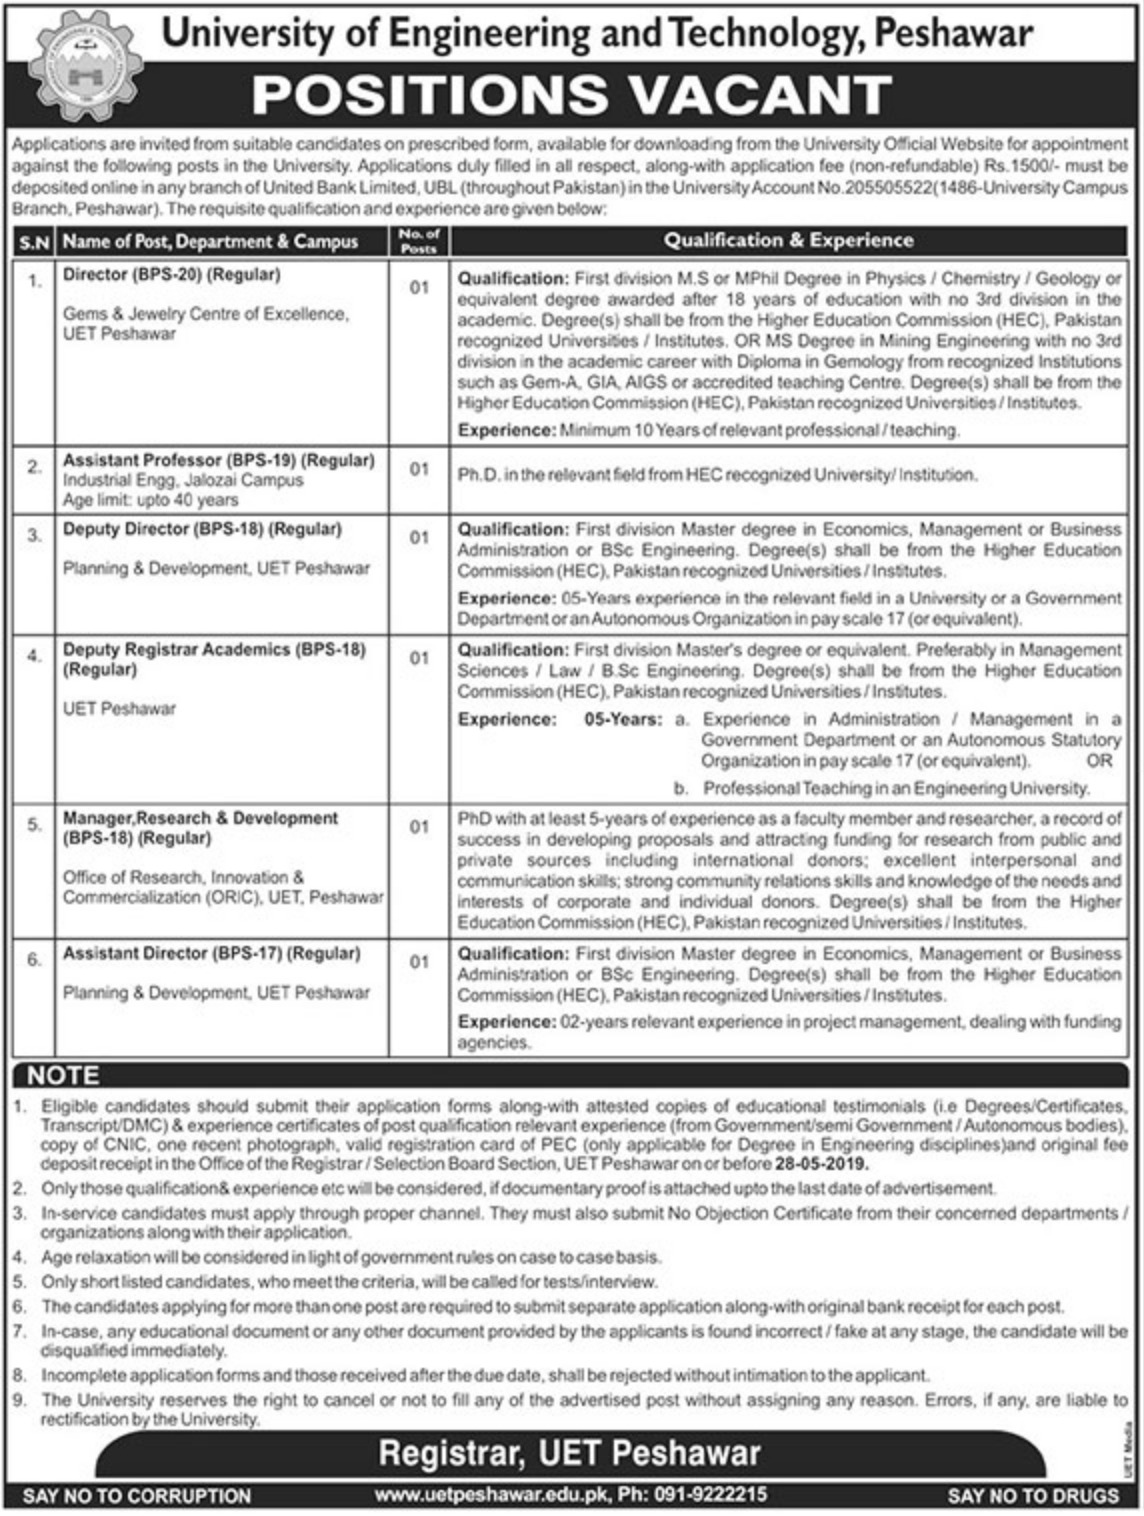 University of Engineering & Technology UET Peshawar Jobs 2019 KPK